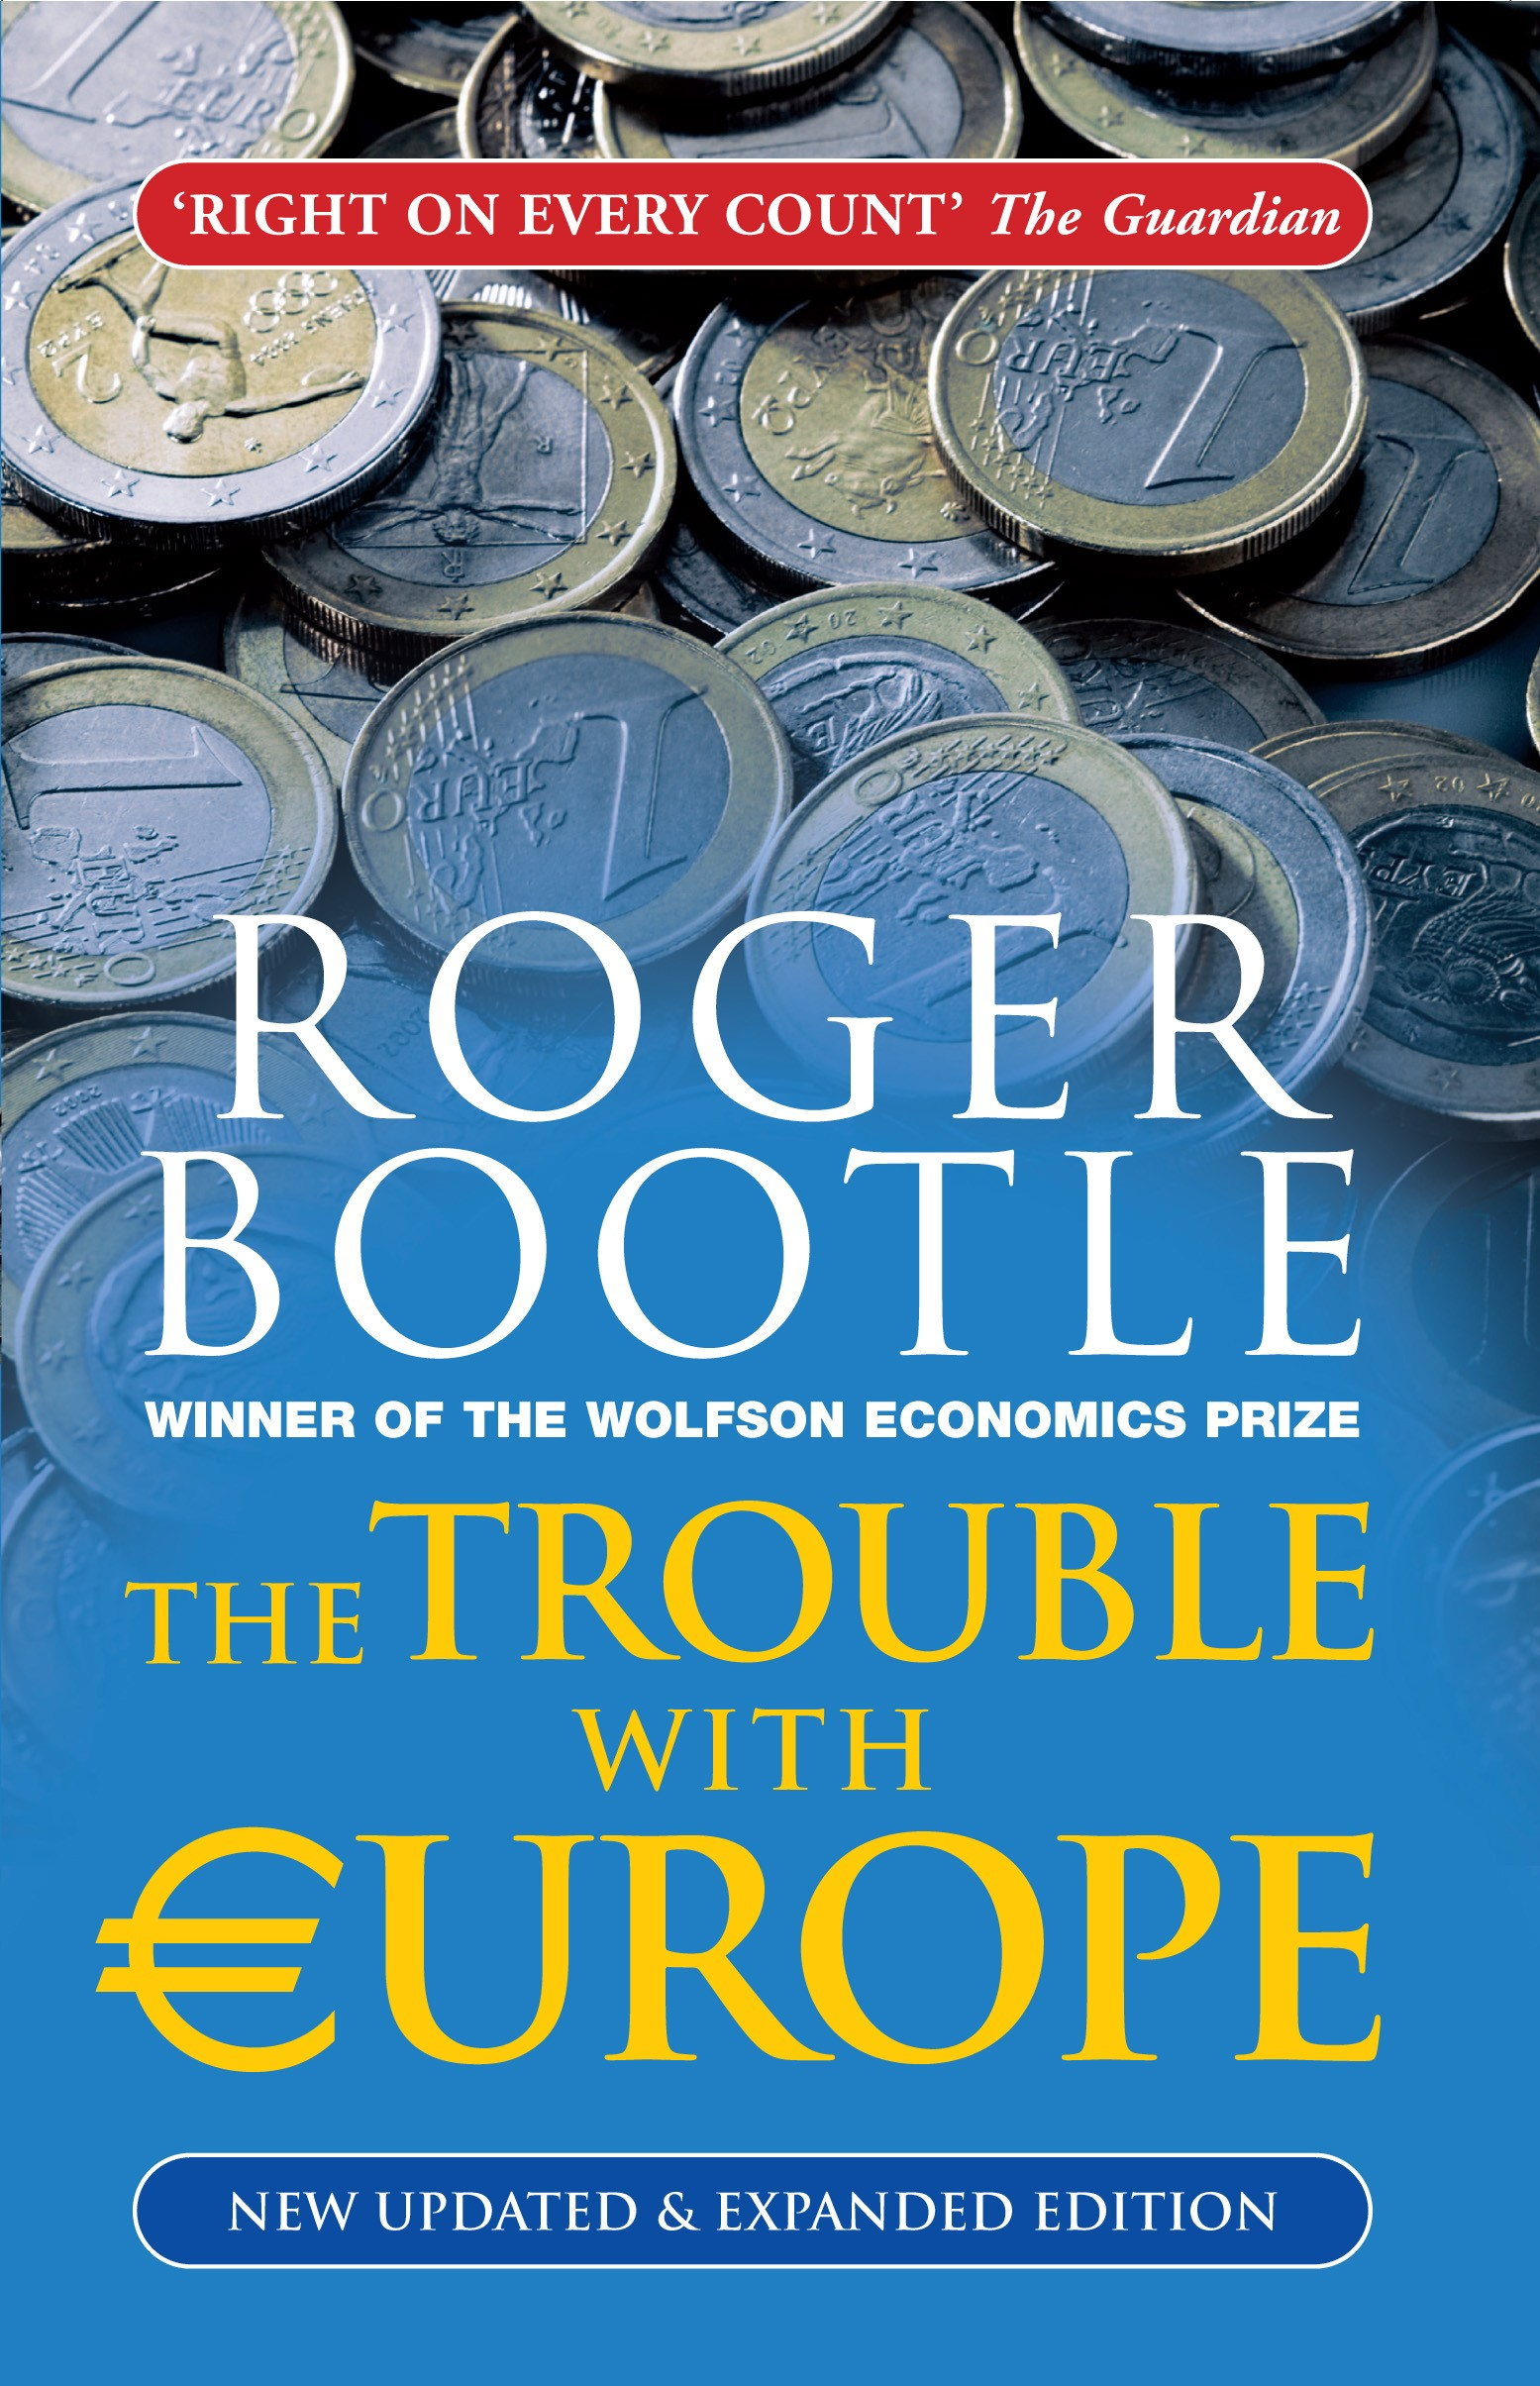 TROUBLE WITH EUROPE, THE